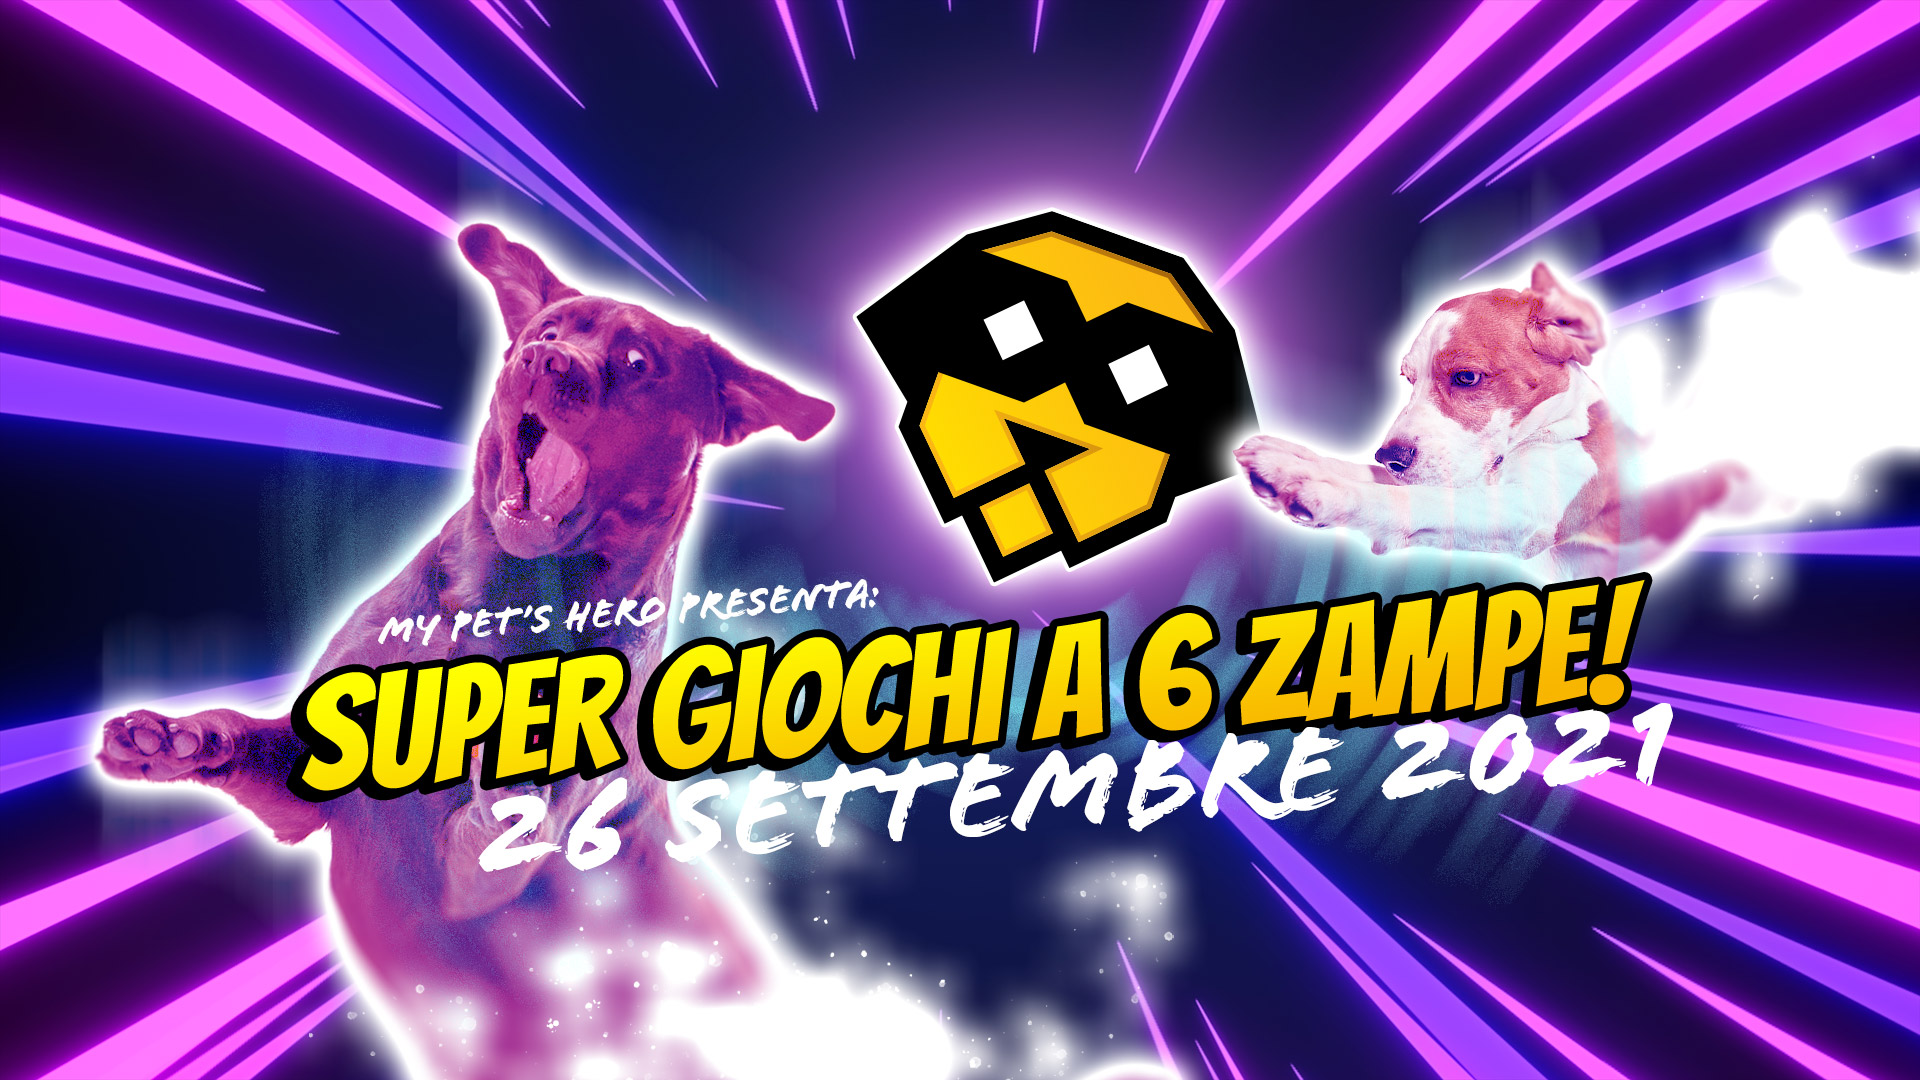 My Pet's Hero: Scopri i Super poteri del tuo cane! SuperGiochi 2021